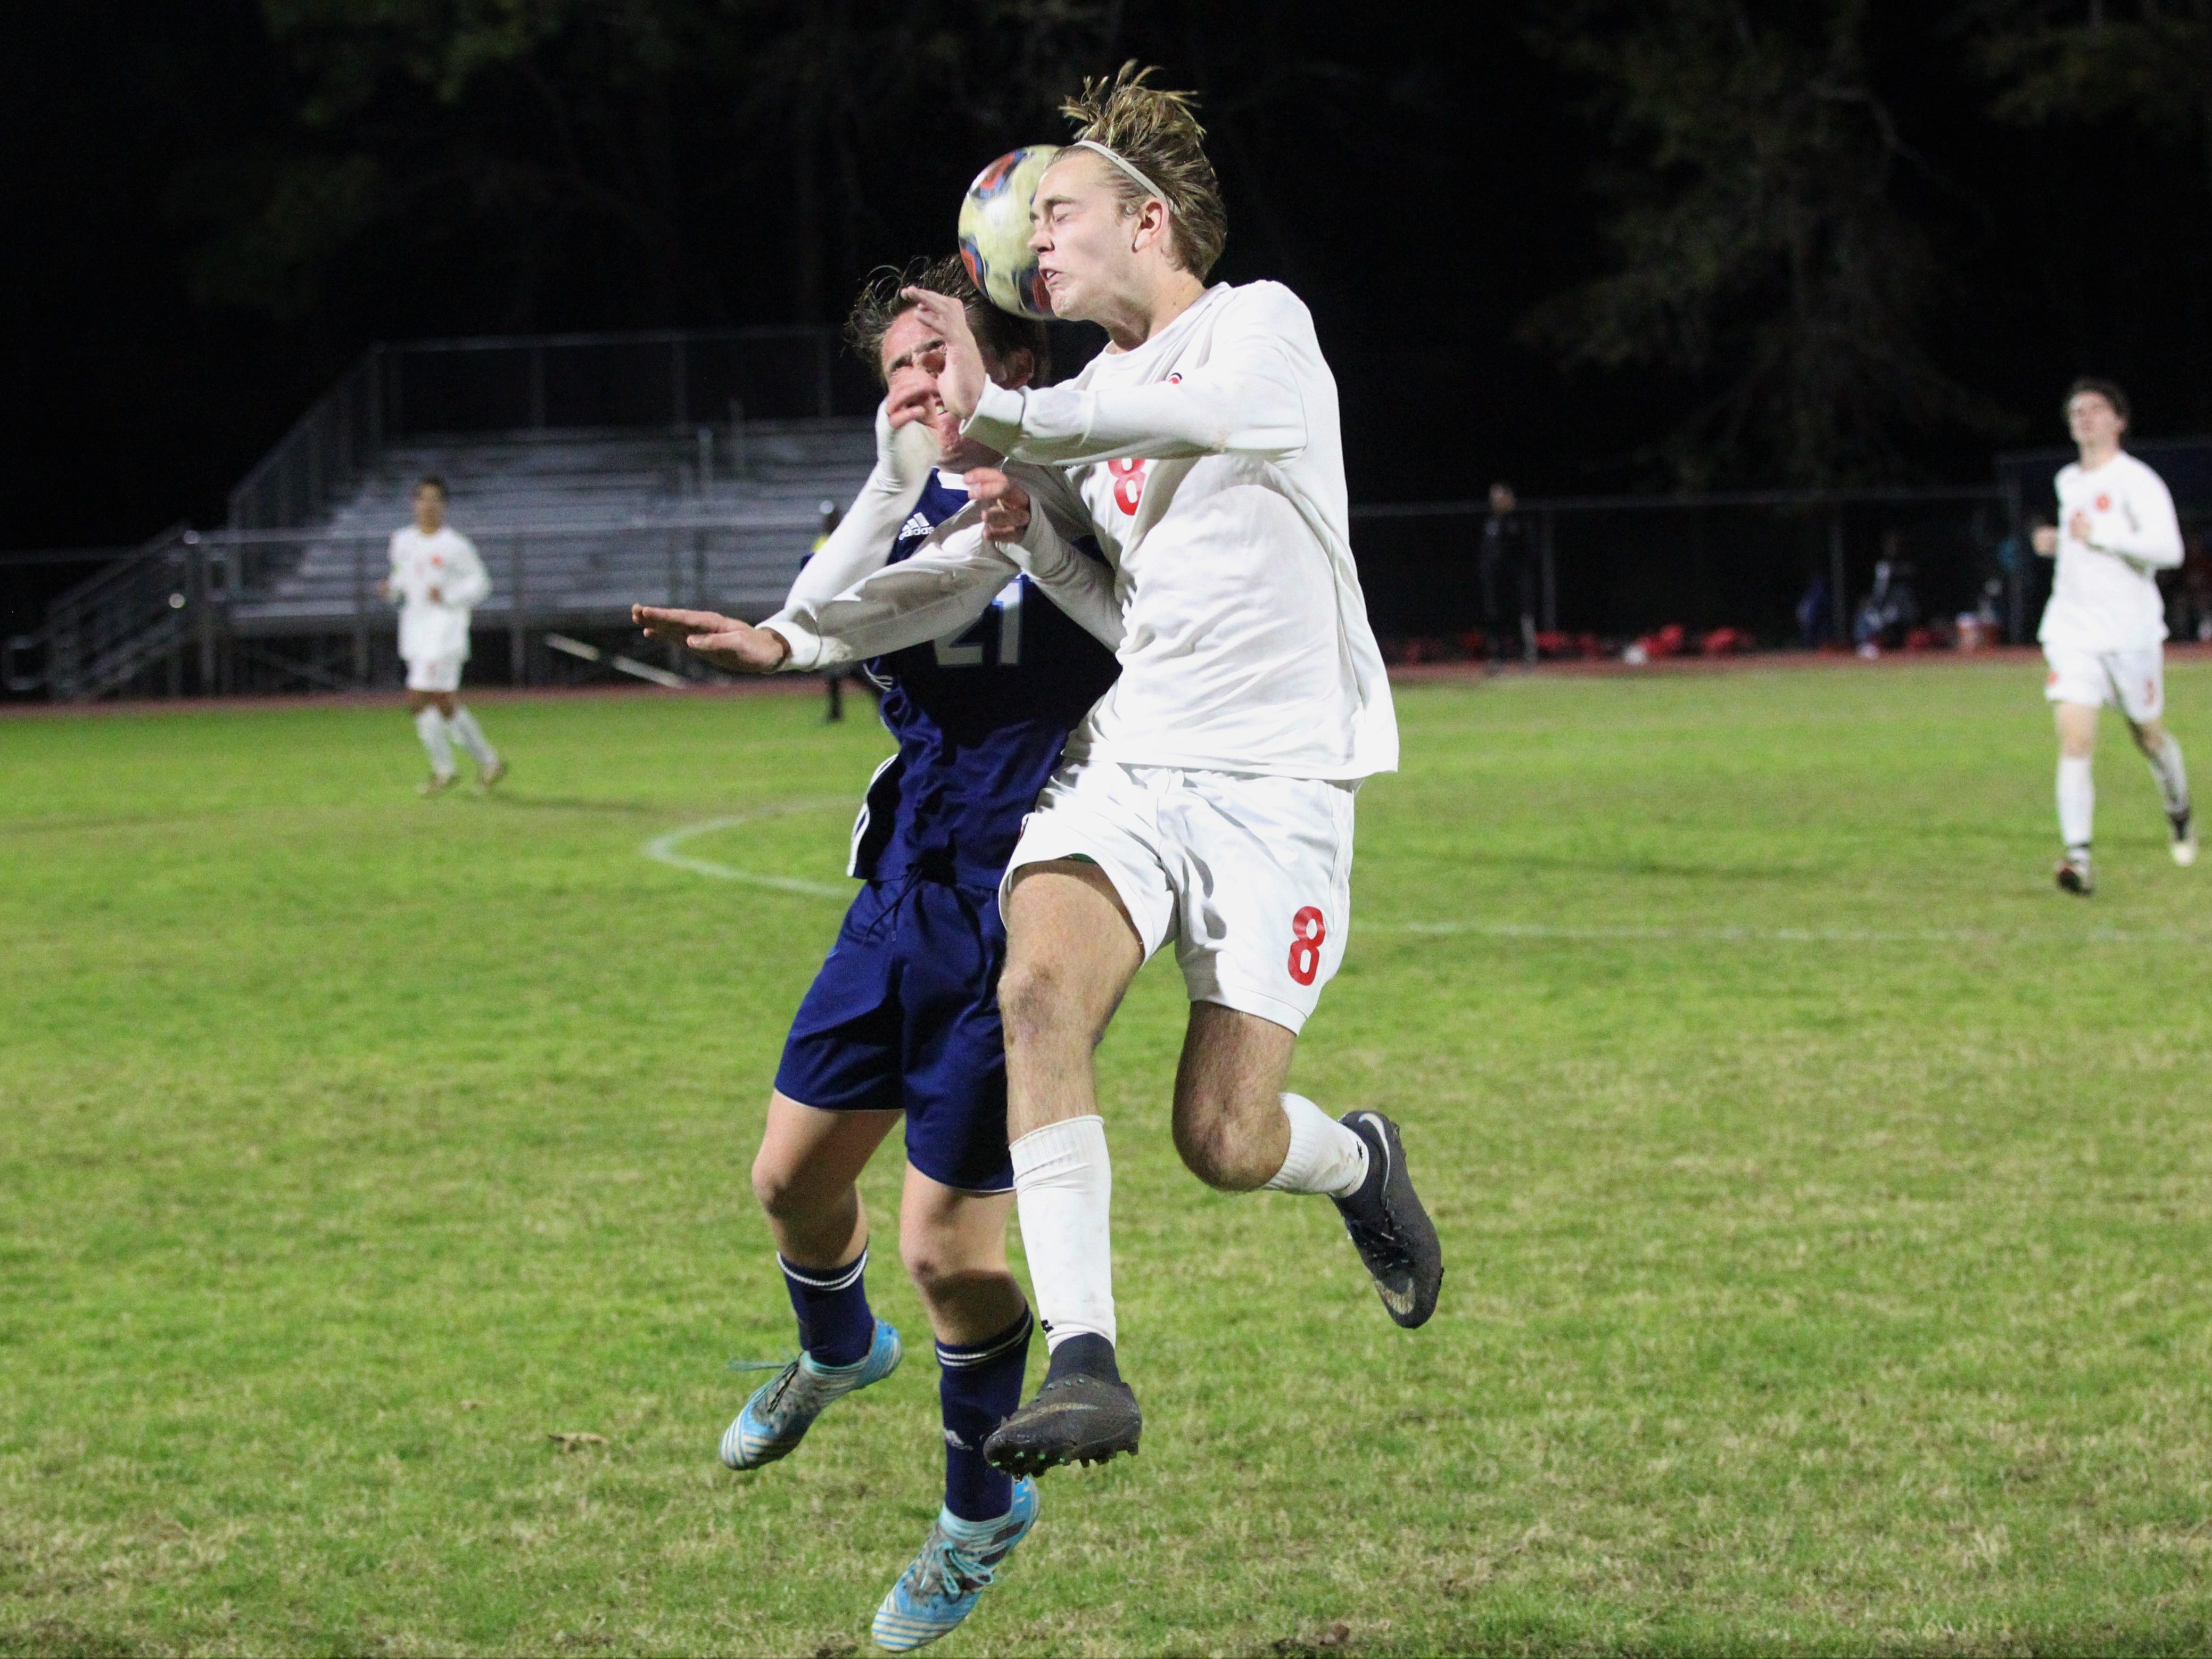 Leon's Nick Ramsden and Maclay's Broedy Poppell collide on a 50/50 ball as Leon's boys soccer team beat Maclay 3-1 on Jan. 22, 2019.